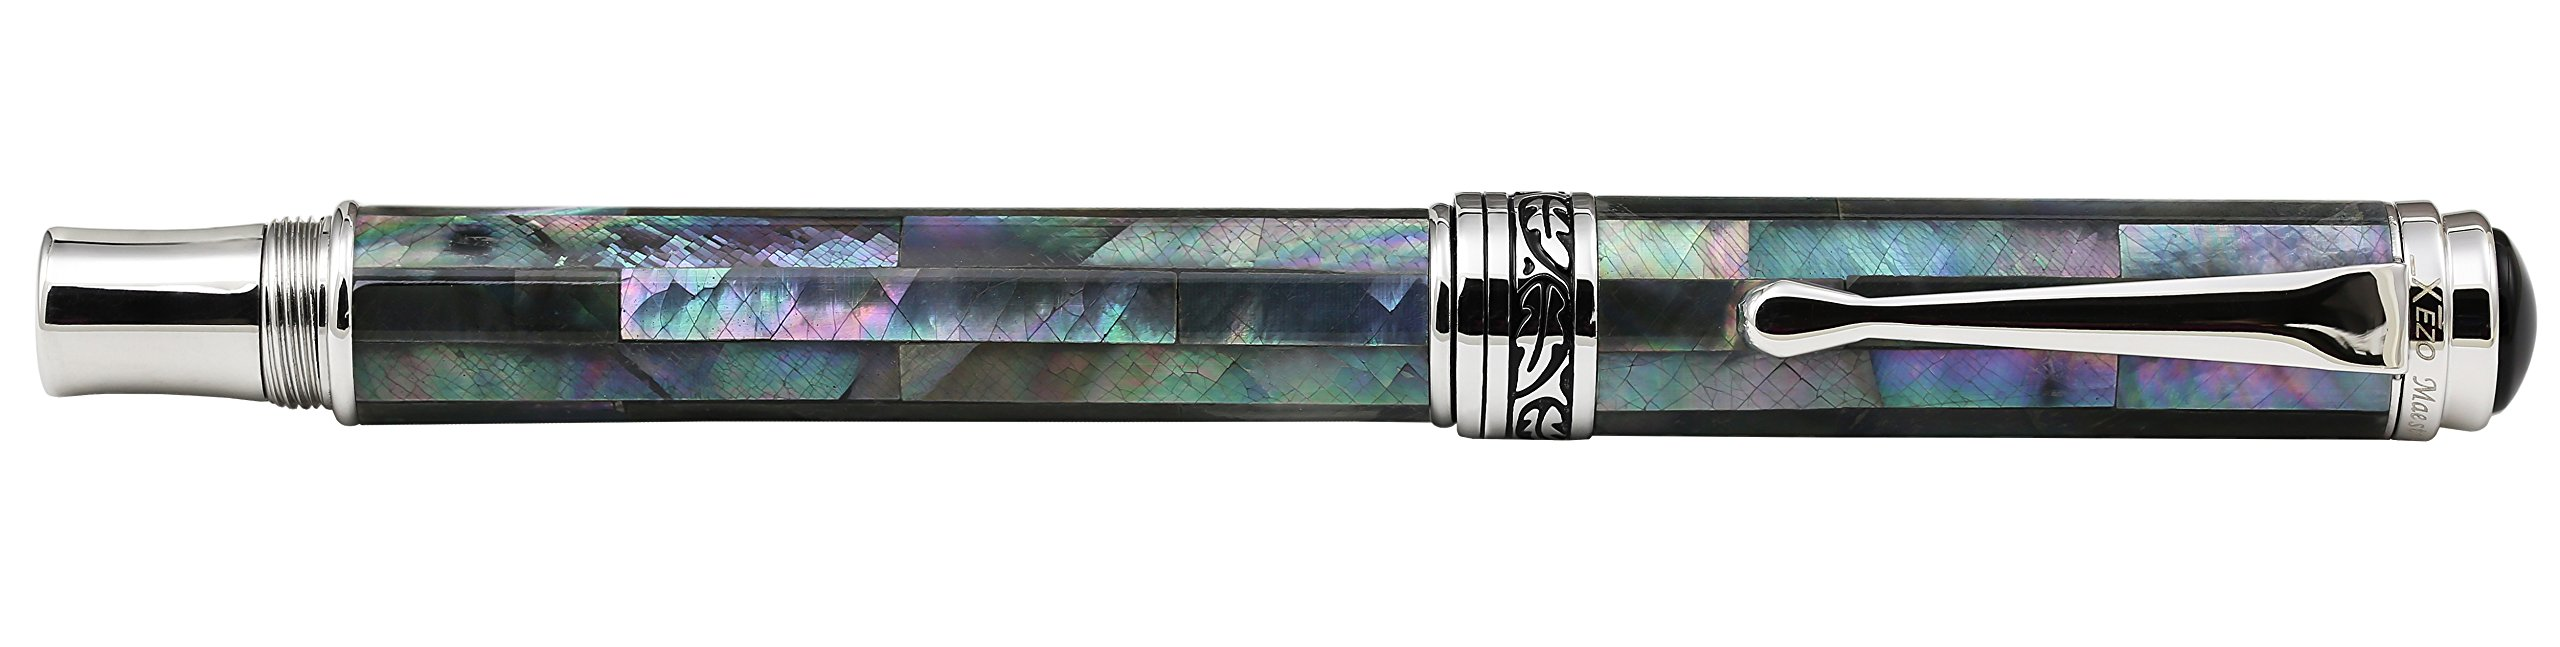 Xezo Maestro Iridescent Natural Black Mother of Pearl Platinum Plated Fine Fountain Pen. No Two Pens Alike by Xezo (Image #5)